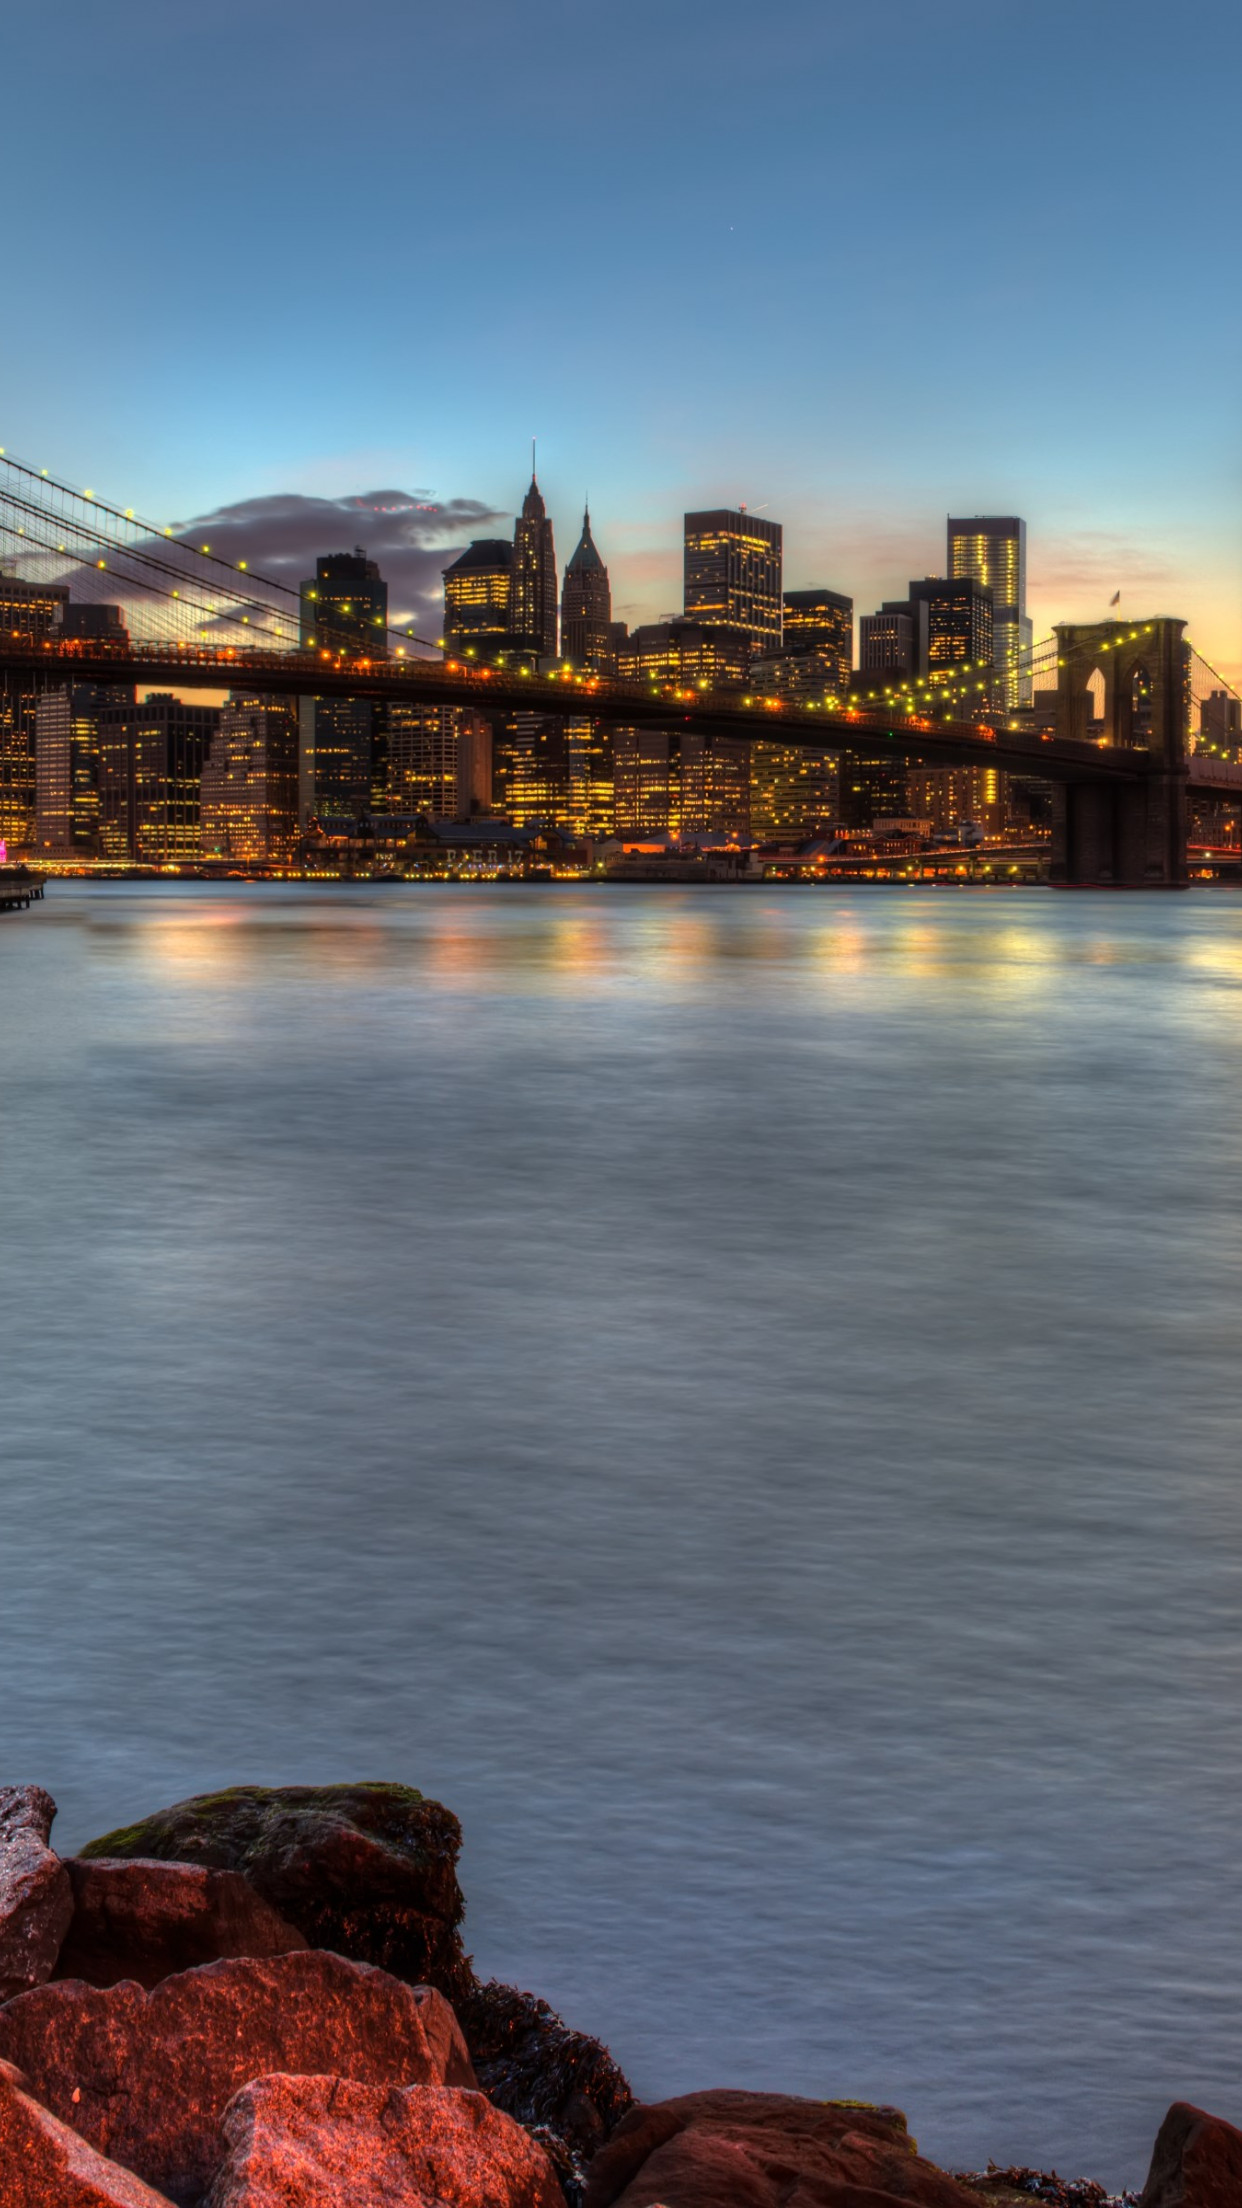 Brooklyn Bridge, NY, USA wallpaper 1242x2208